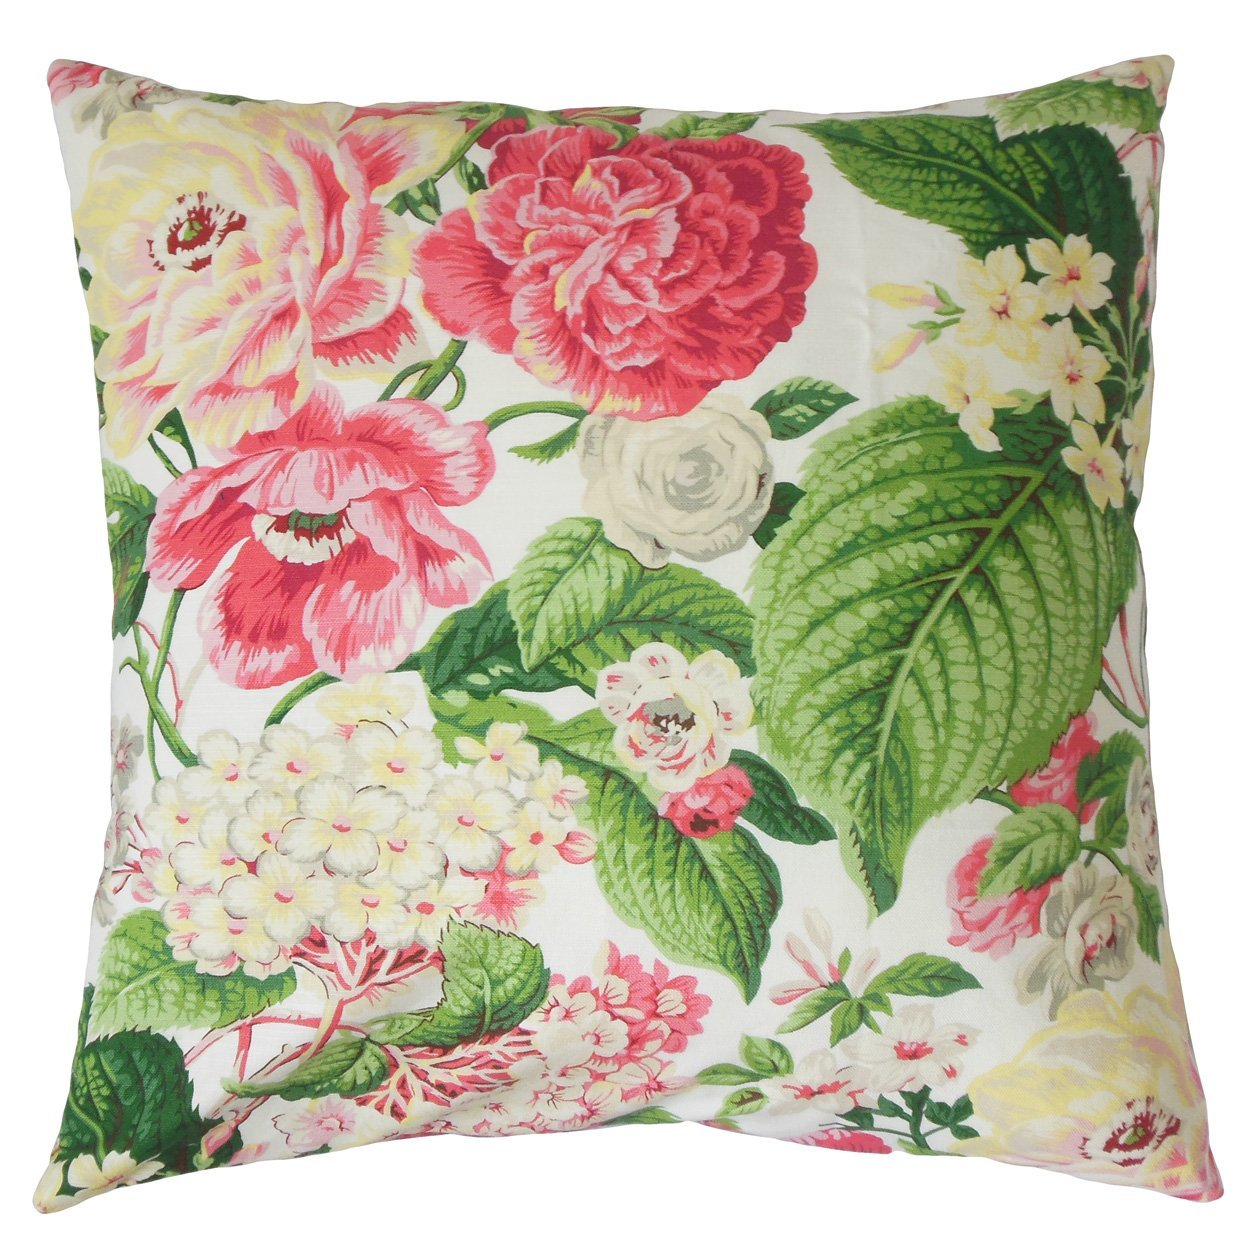 The Pillow Collection Rose Green Kalonice Floral Bedding Sham King//20 x 36